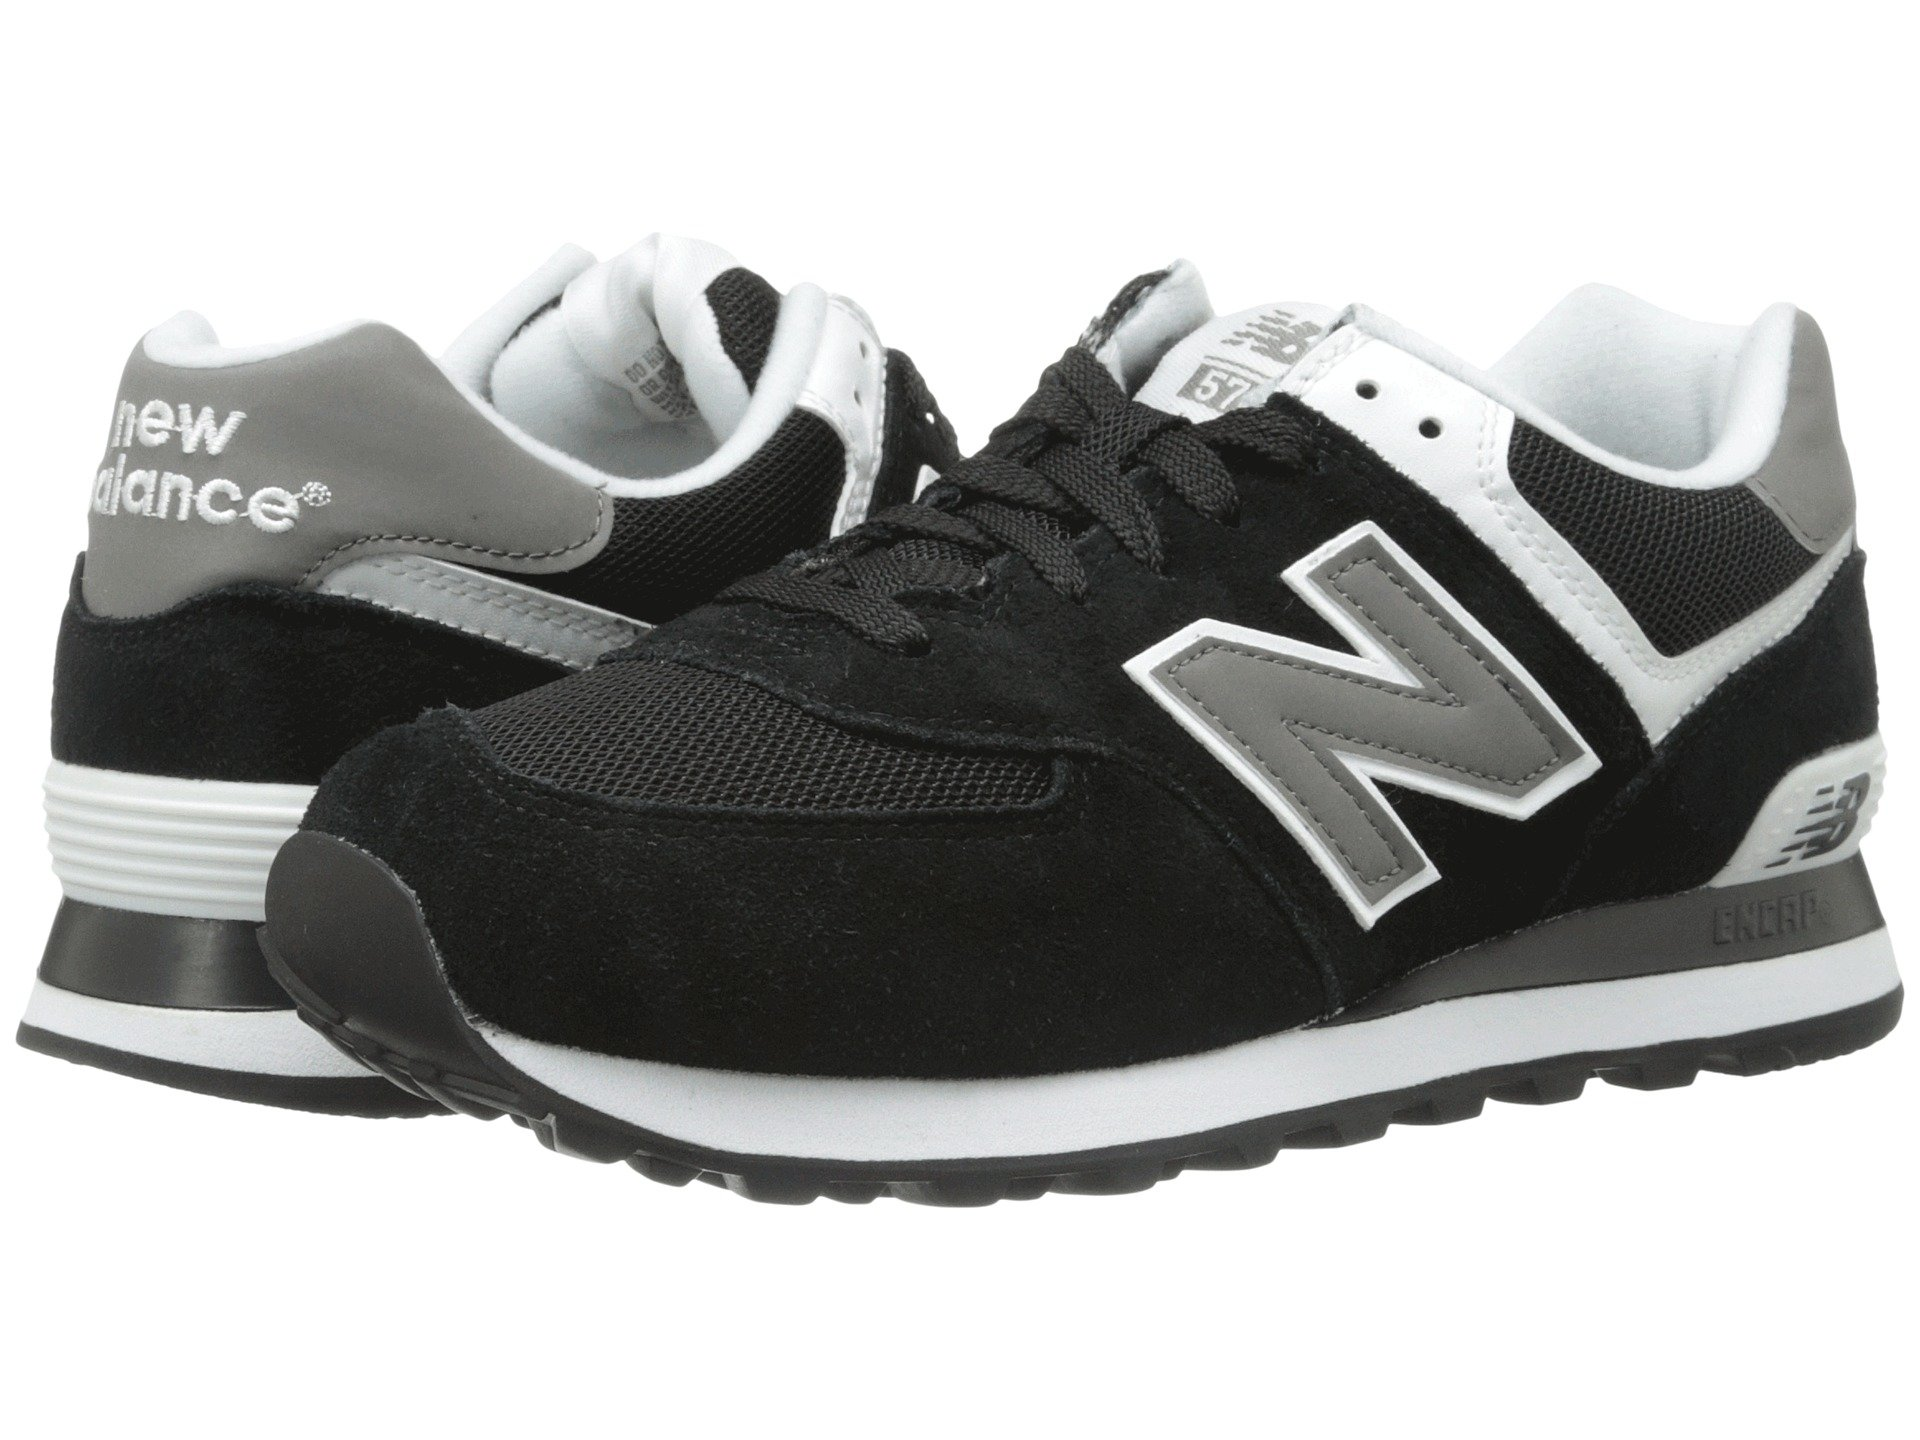 new balance m574 black grey